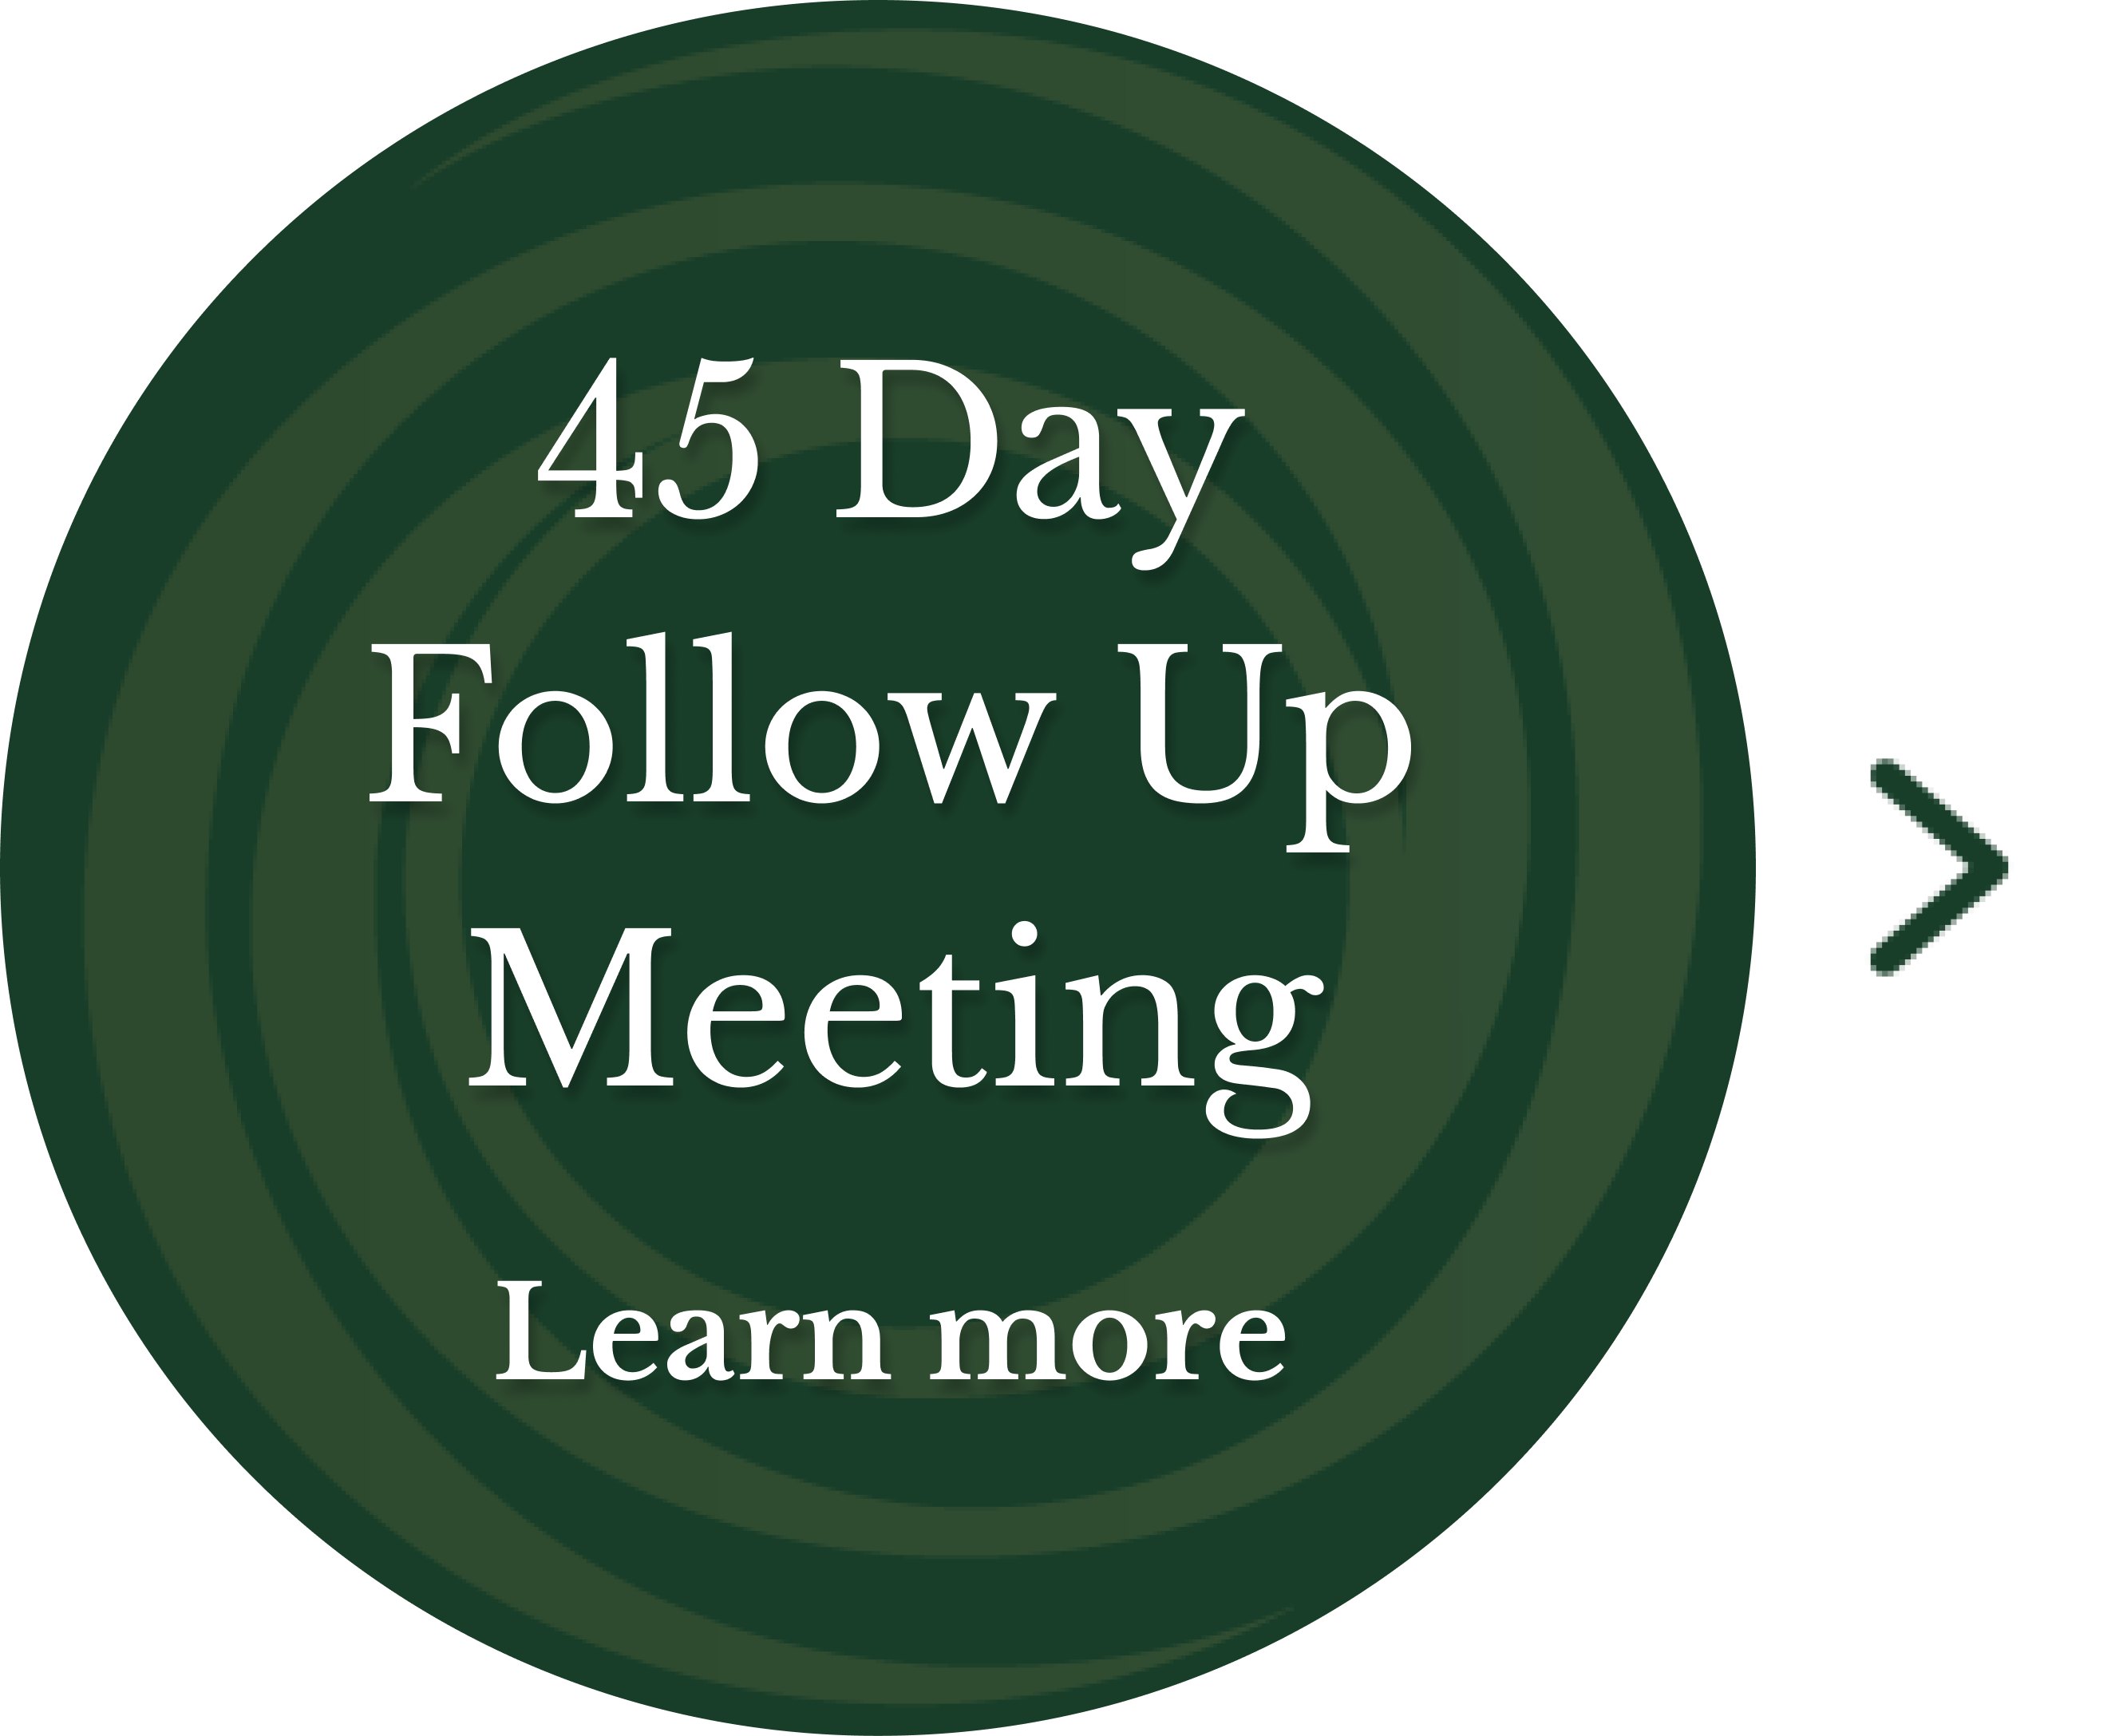 For 45 Day Follow Up Meeting details click here